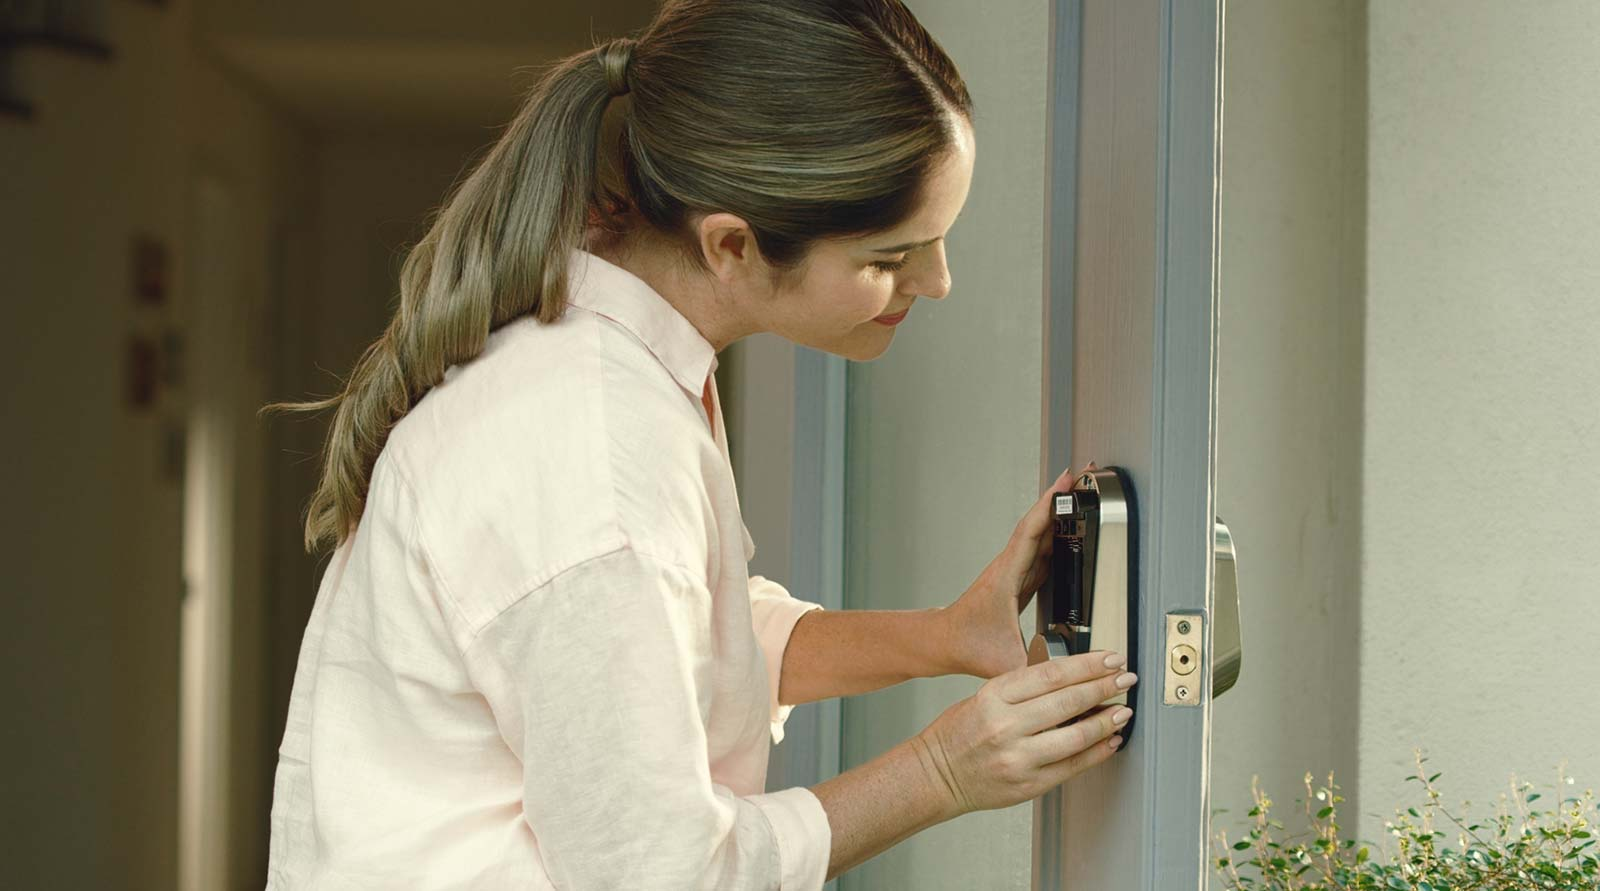 Fitting the Samsung A30 smart lock